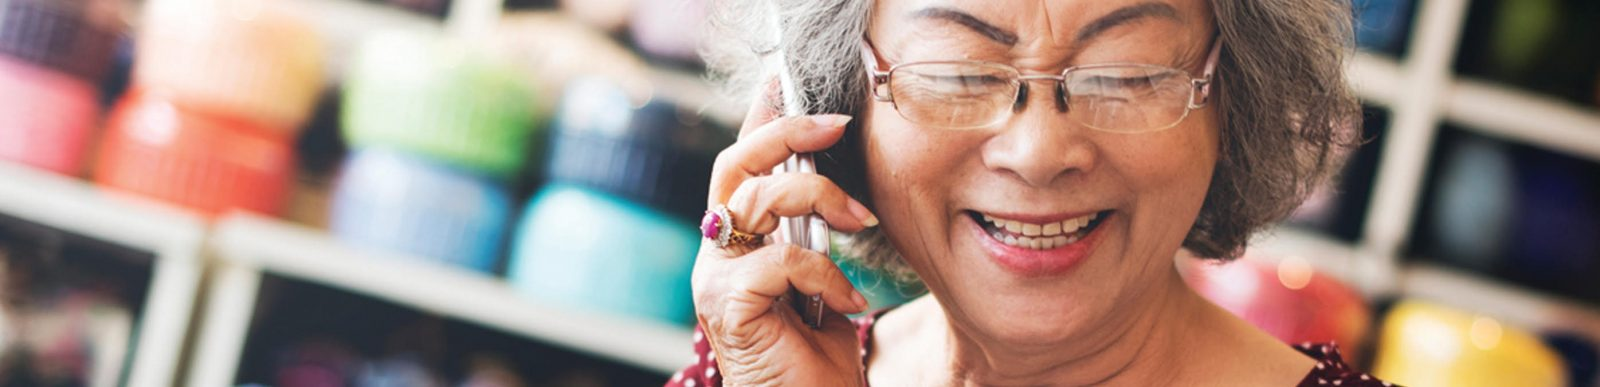 Cropped image of a woman smiling on the phone